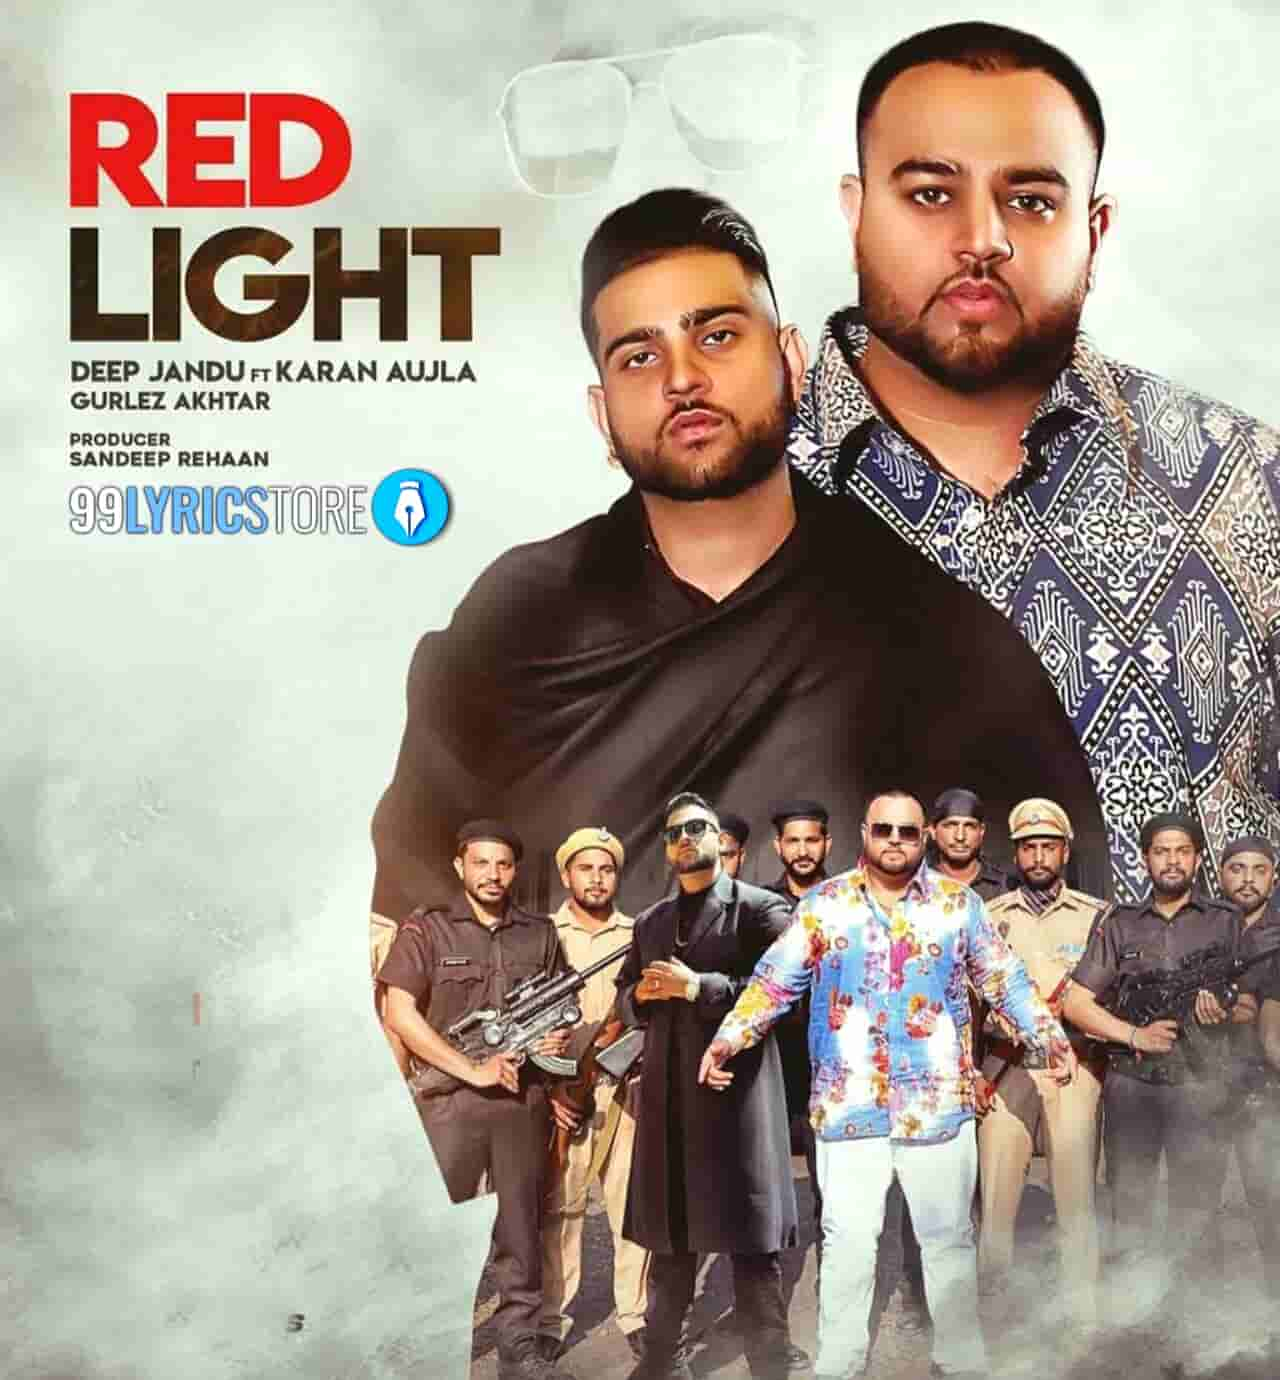 Red Light Punjabi Song Sung by deep ft. Karan Aujla and Gurlez Akhtar